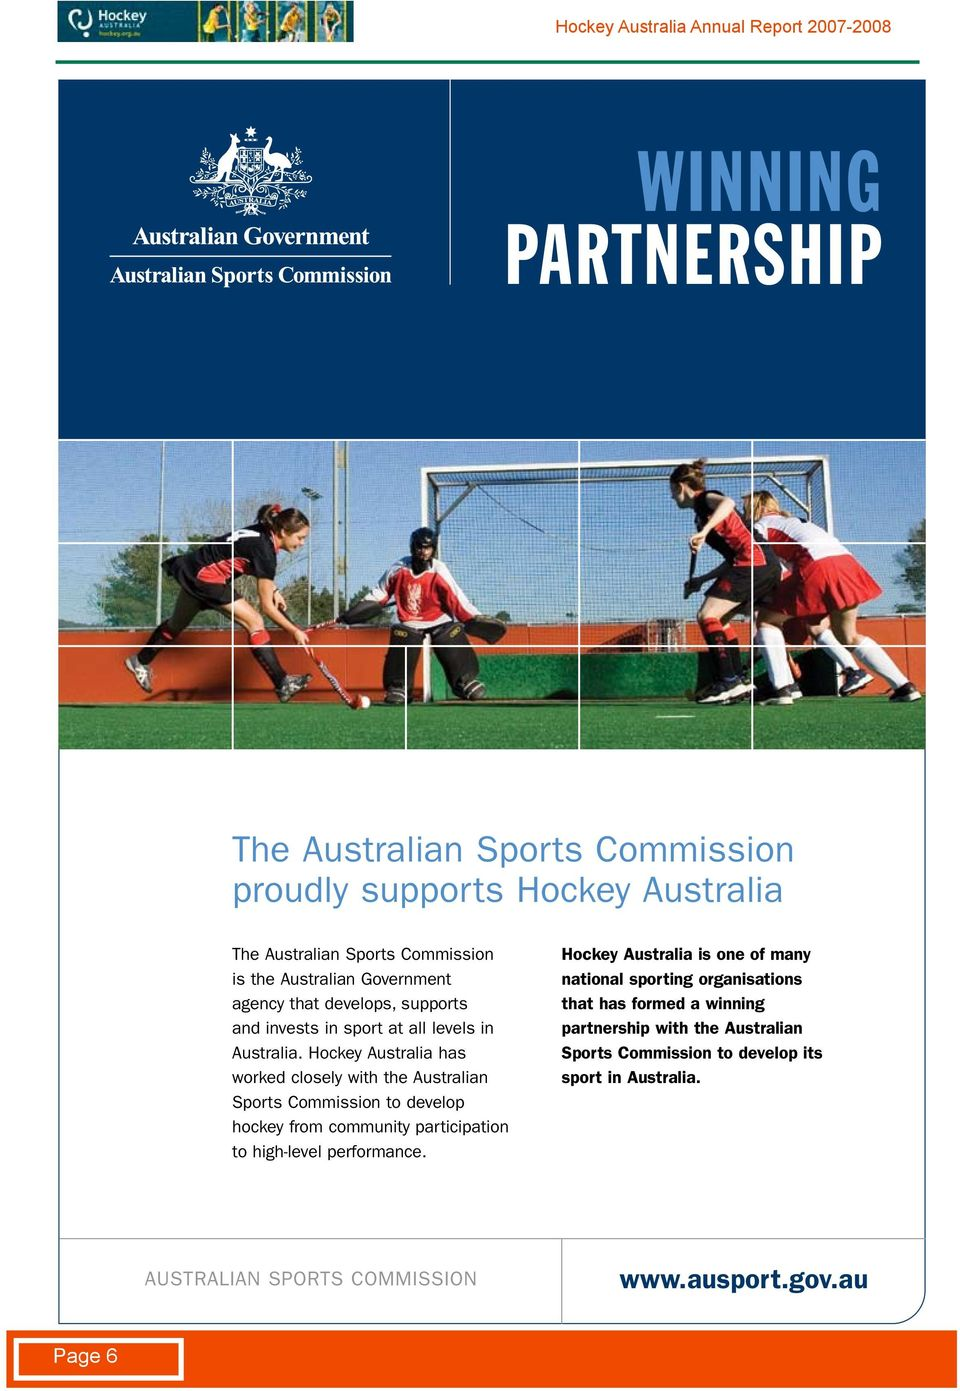 Hockey Australia has worked closely with the Australian Sports Commission to develop hockey from community participation to high-level performance.